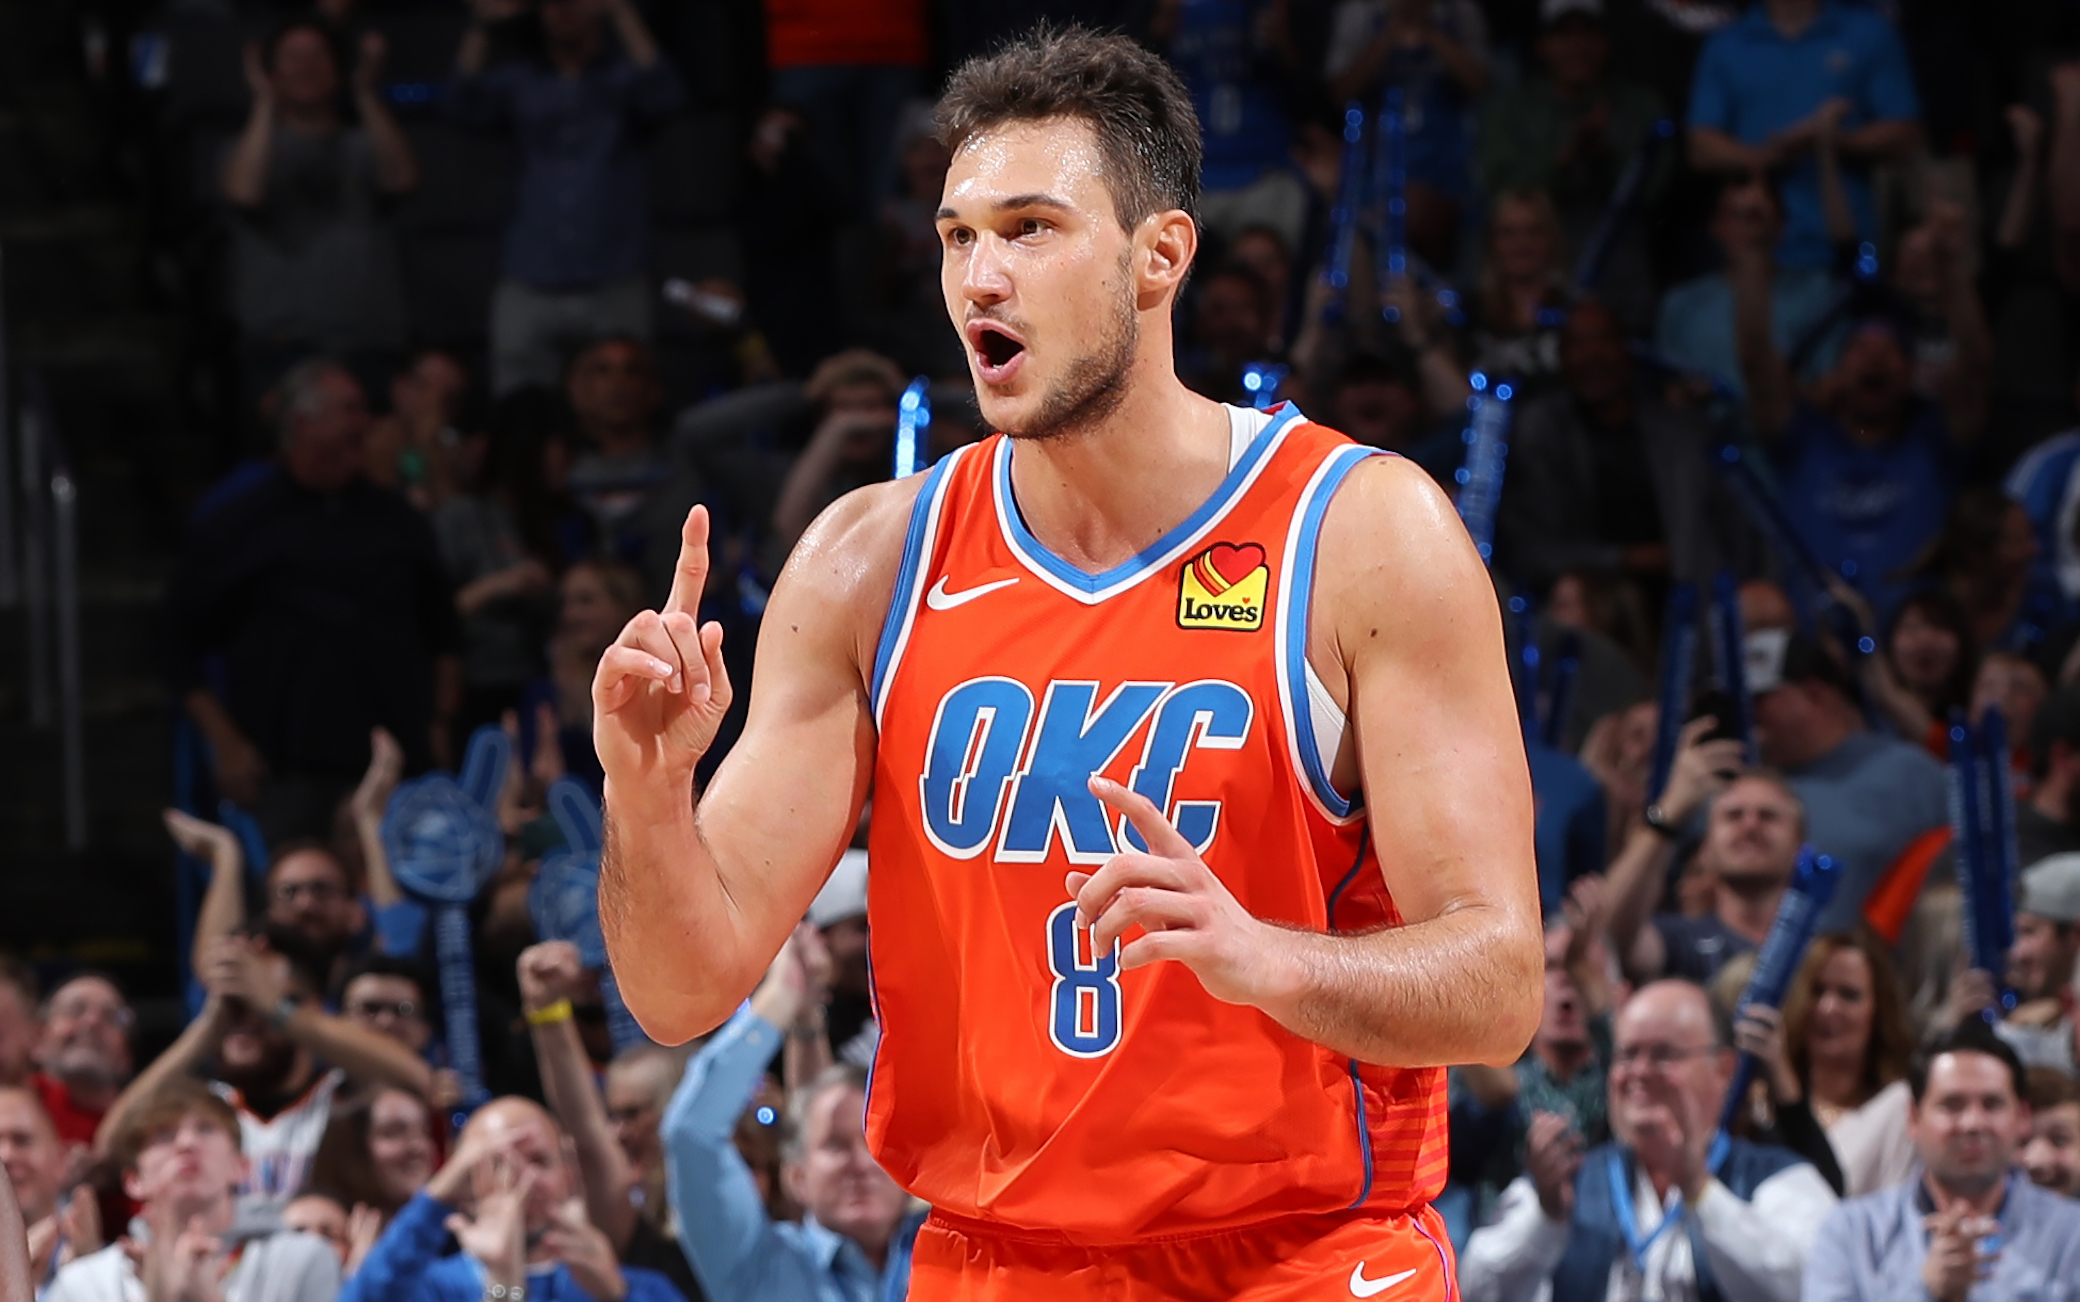 Italiani in Nba - Danilo Gallinari